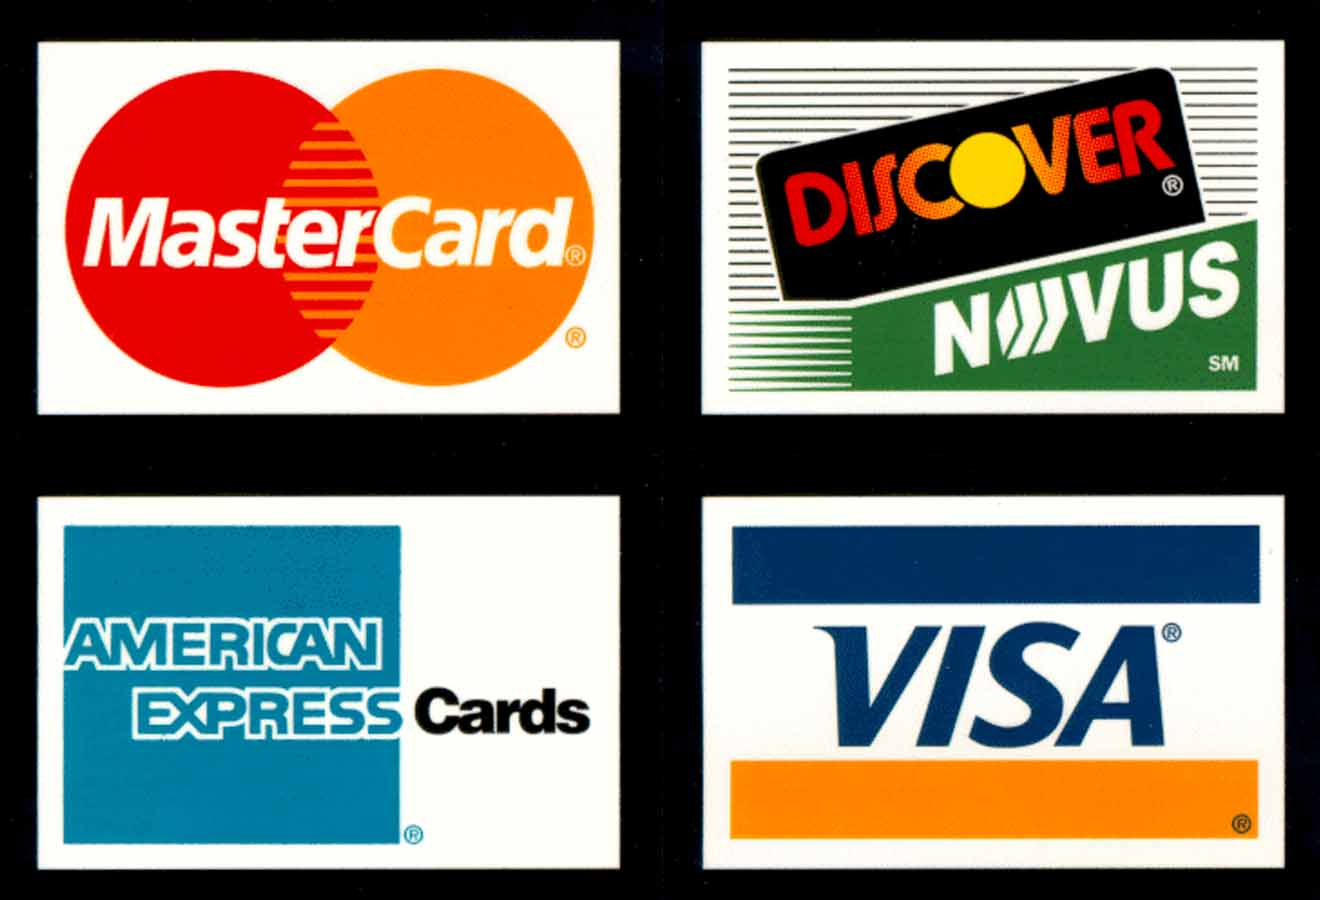 Discover small business credit card choice image free business cards discover small business credit card image collections free small business credit card discover company credit card magicingreecefo Image collections